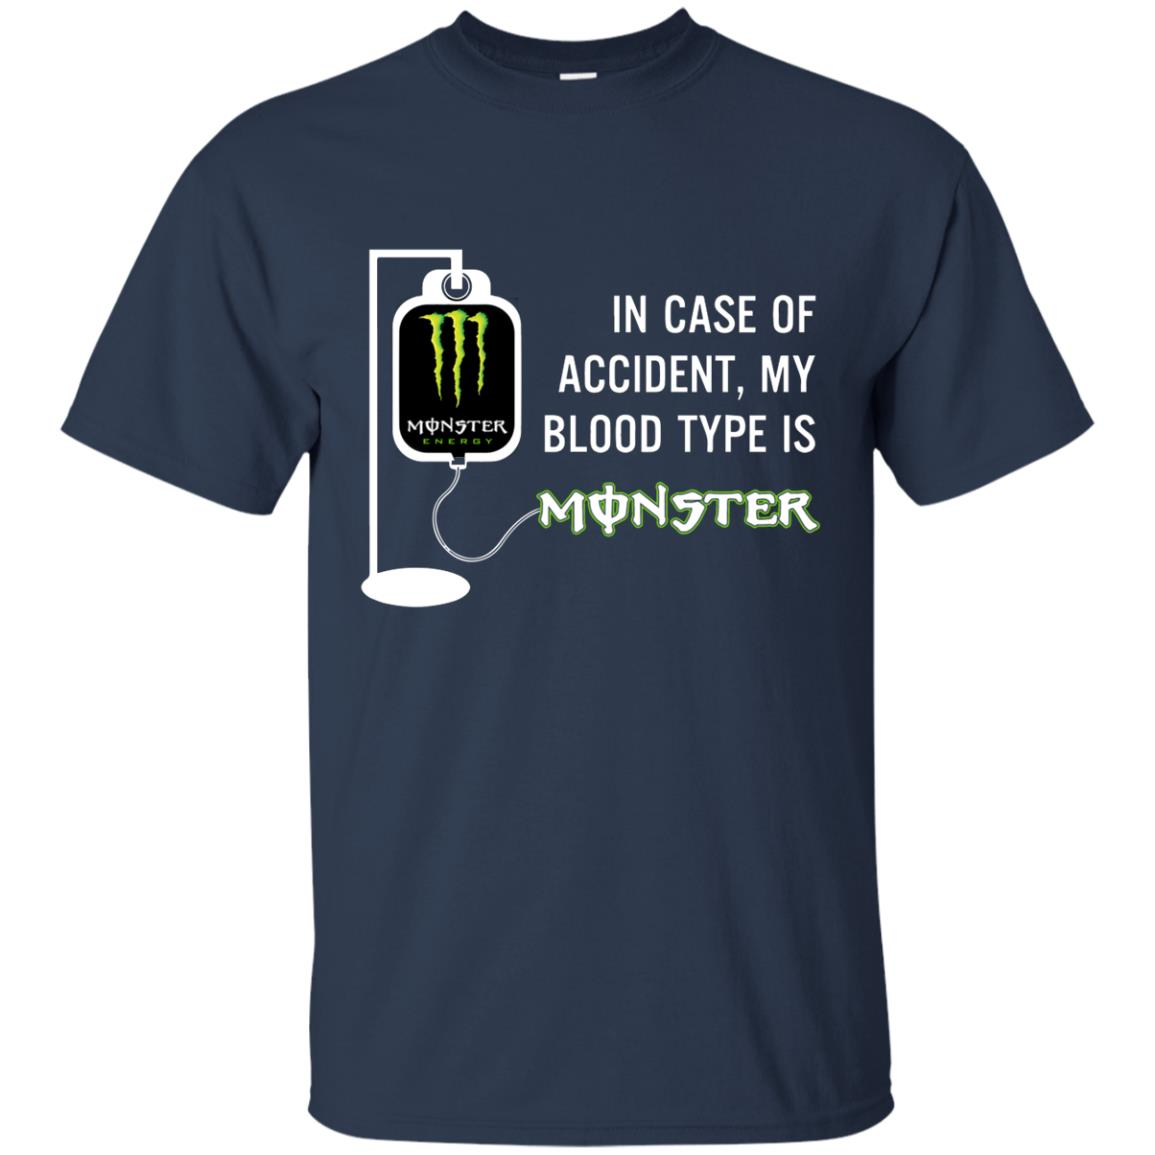 image 738 - In Case Of Accident My Blood Type Is Monster Shirt